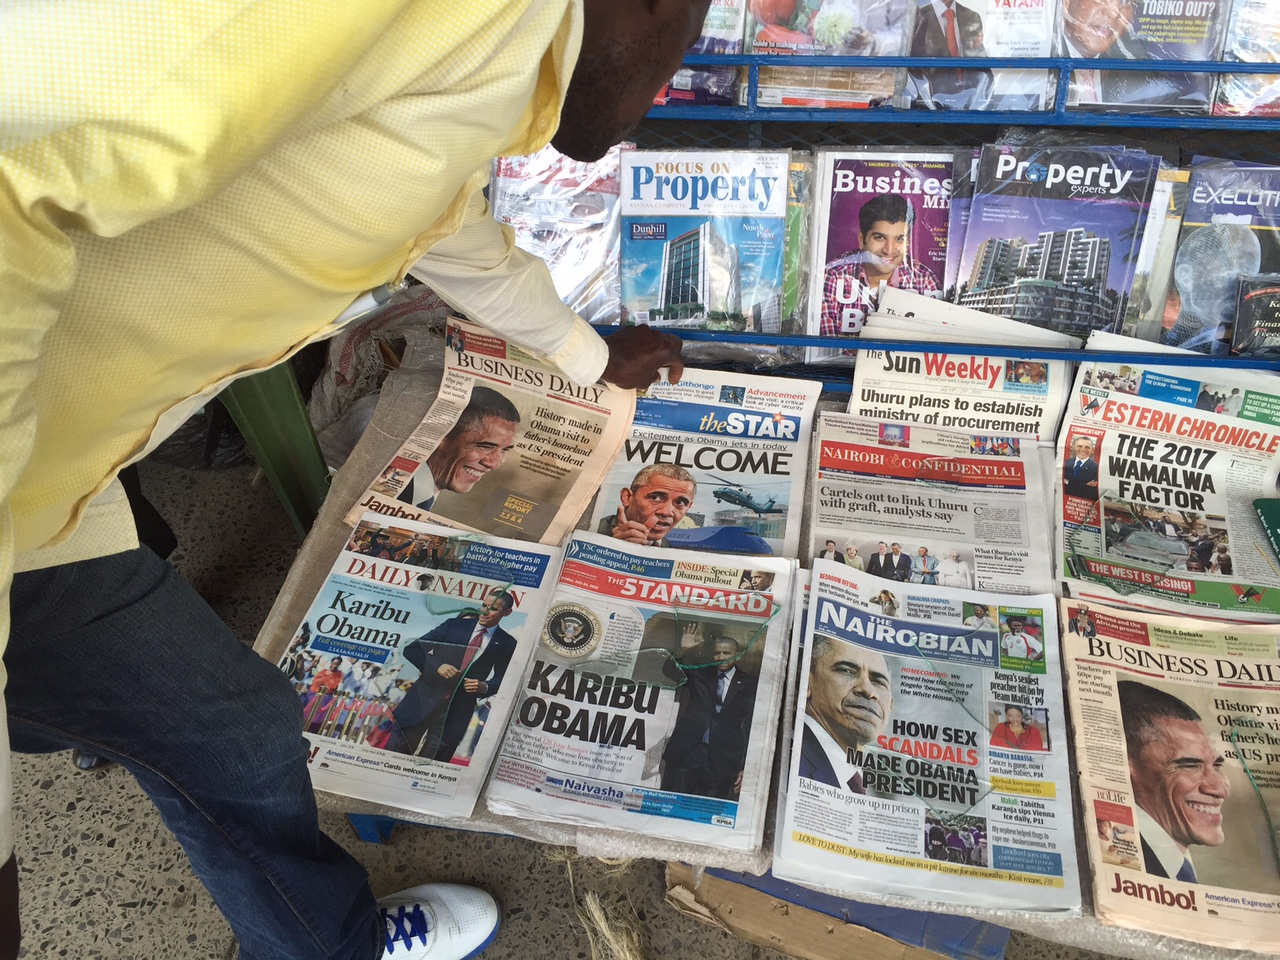 Newsstands in Nairobi contain papers highlighting President Barack Obama's visit, July 24, 2015. (Photo: Aru Pande / VOA)